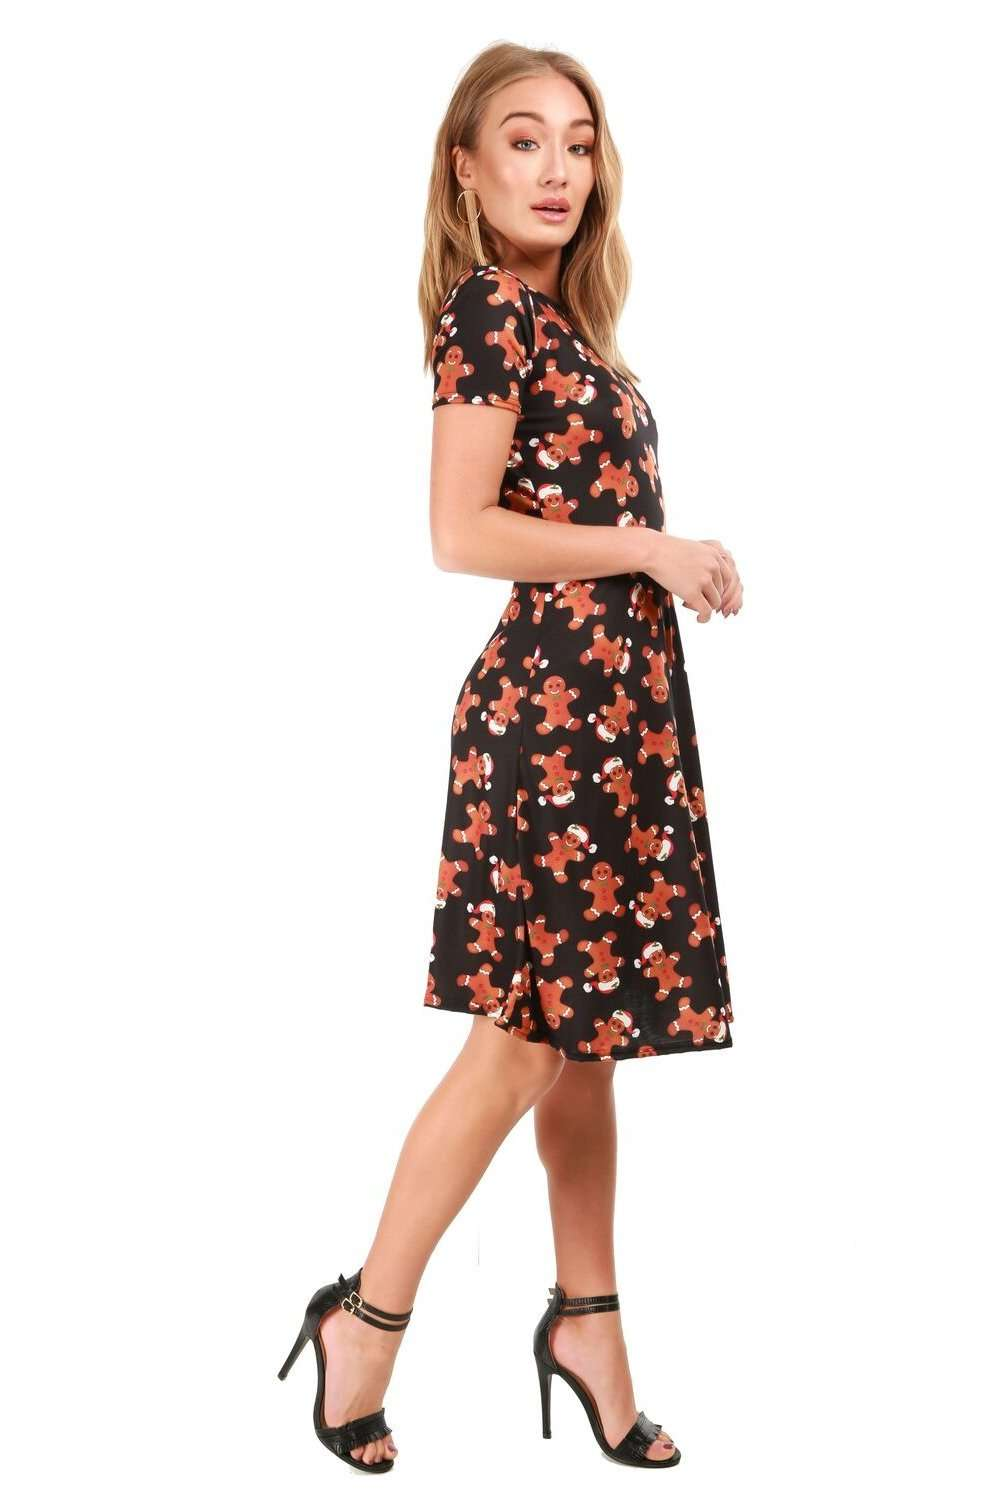 Ginger Bread Christmas Print Midi Swing Dress - bejealous-com